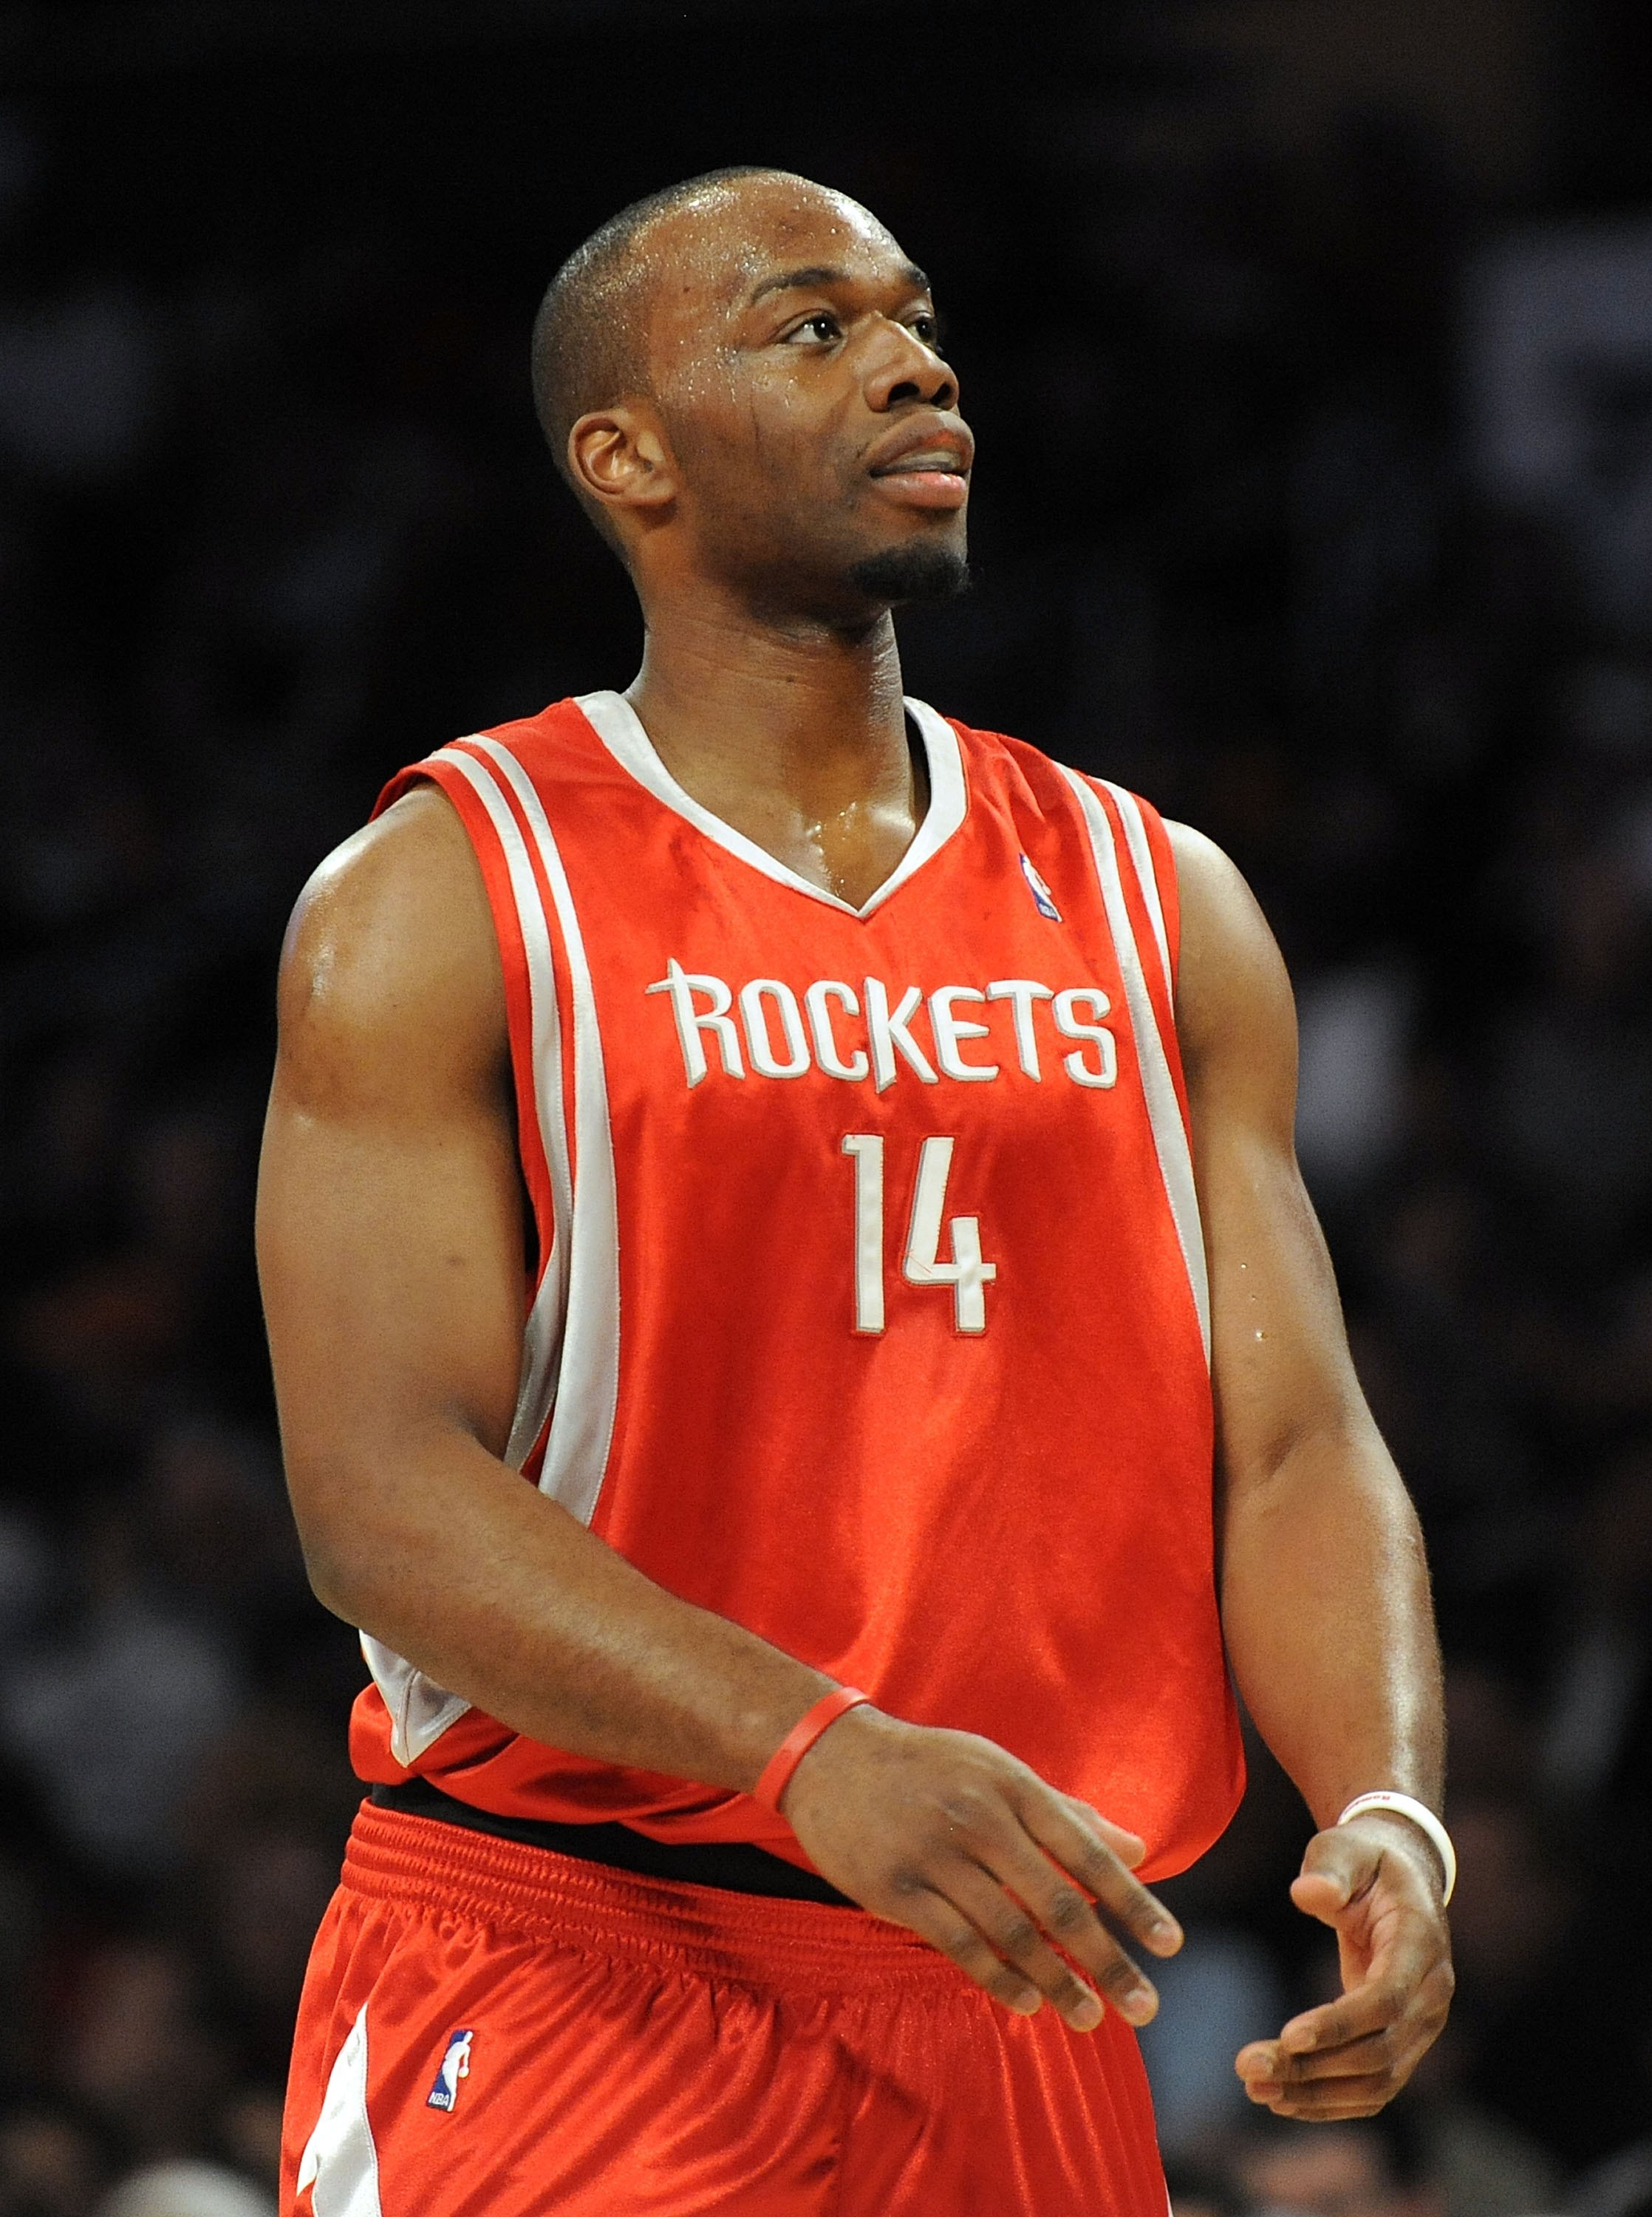 LOS ANGELES, CA - JANUARY 05:  Carl Landry #14 of the Houston Rockets reacts after a foul during the game against the Los Angeles Lakers at Staples Center on January 5, 2010 in Los Angeles, California.  NOTE TO USER: User expressly acknowledges and agrees